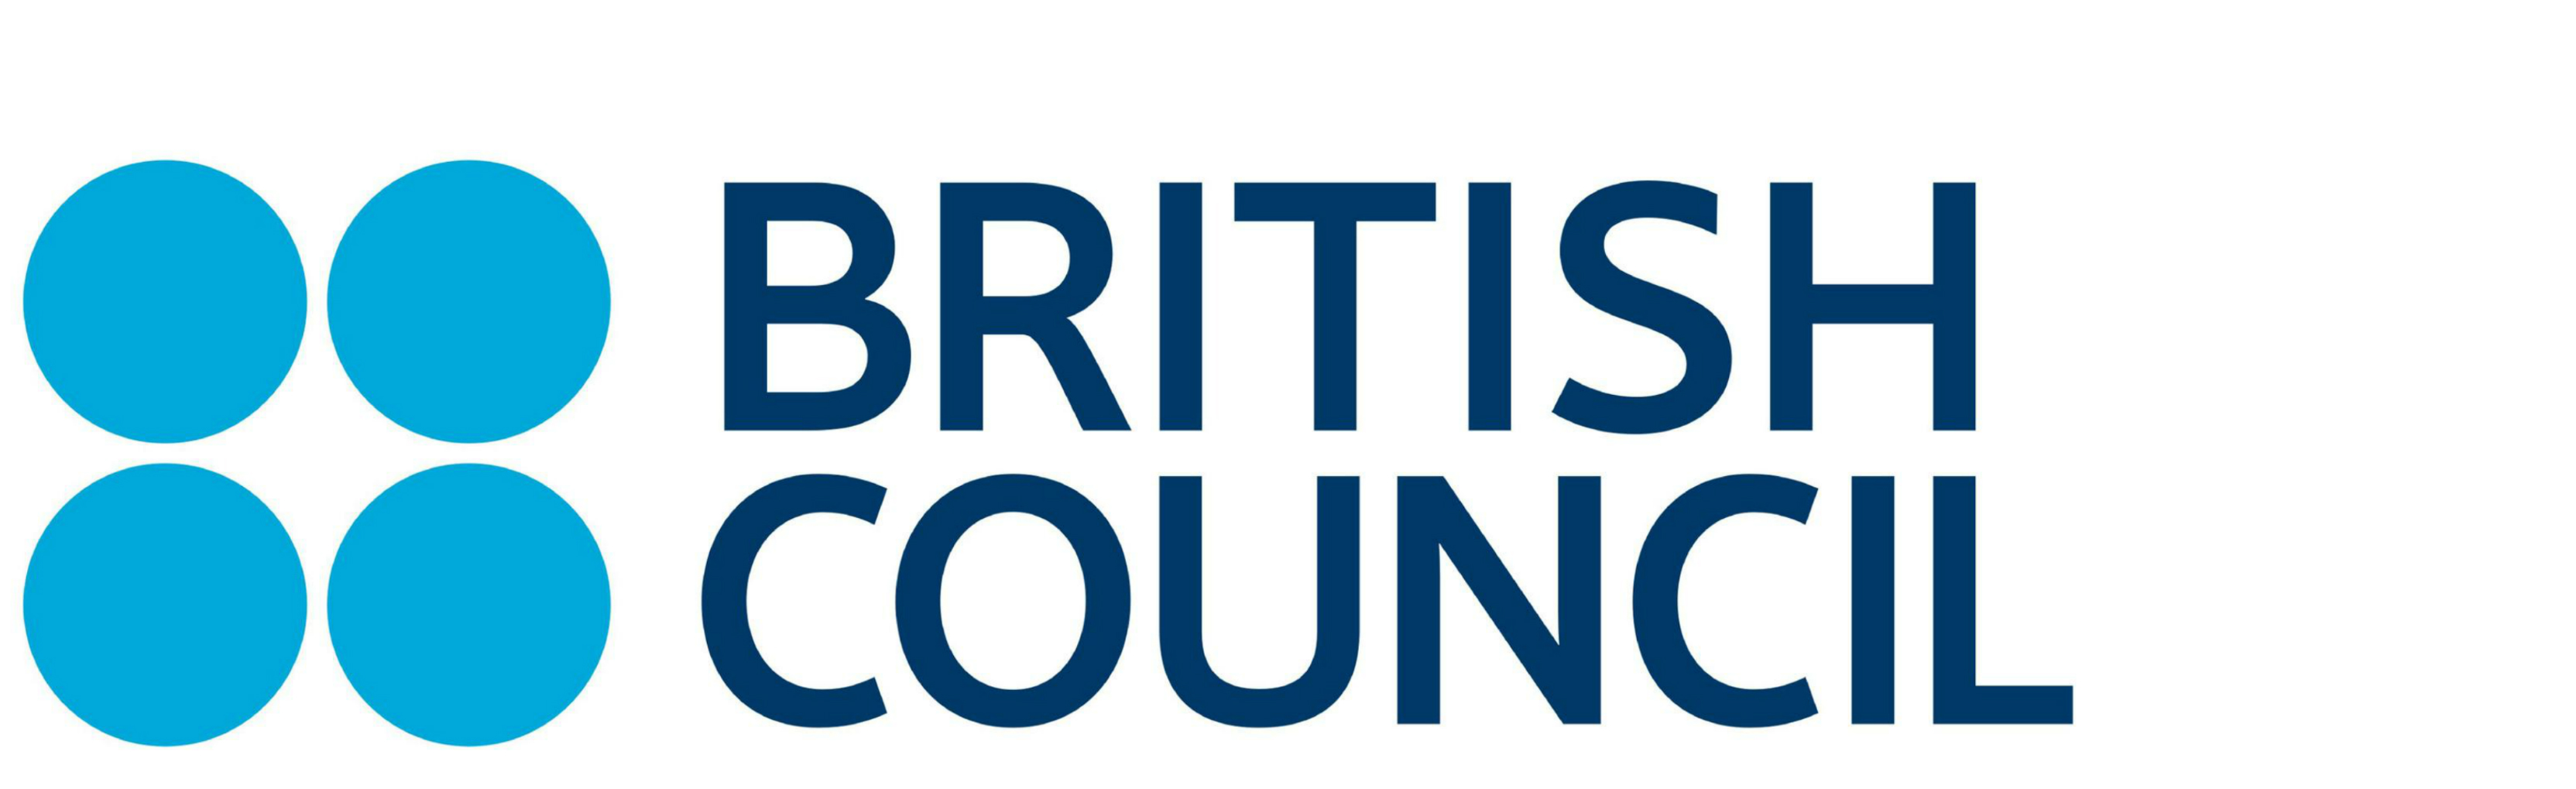 british_council_logo_template_1.jpg